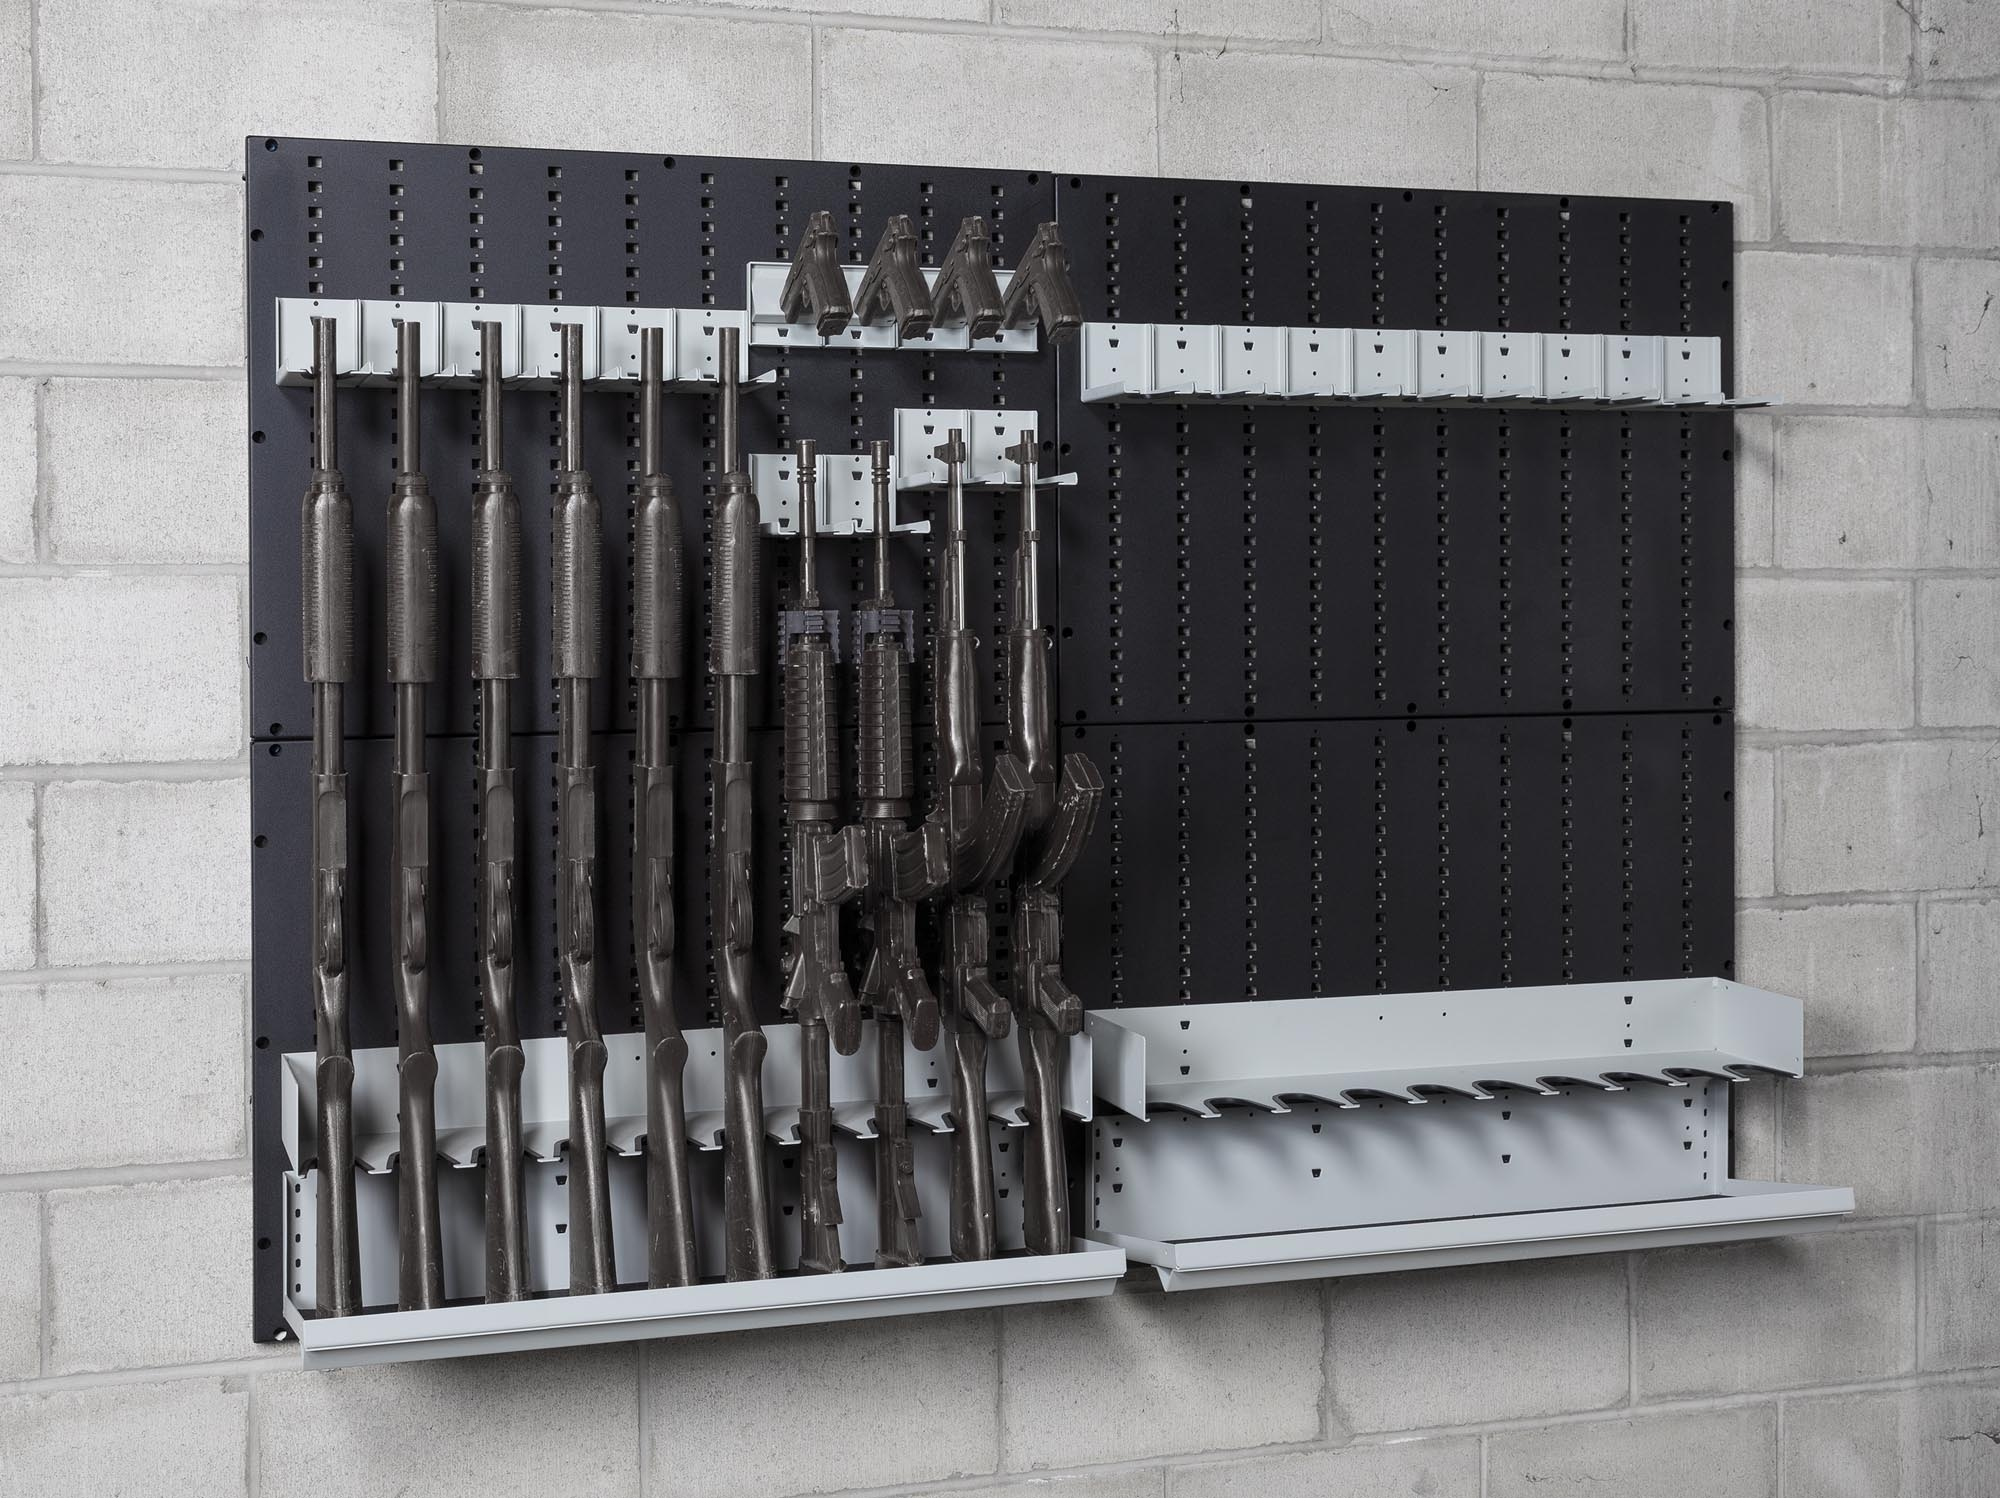 Weapon Wall Panels Lockdsolid Weapon Storage Distribution